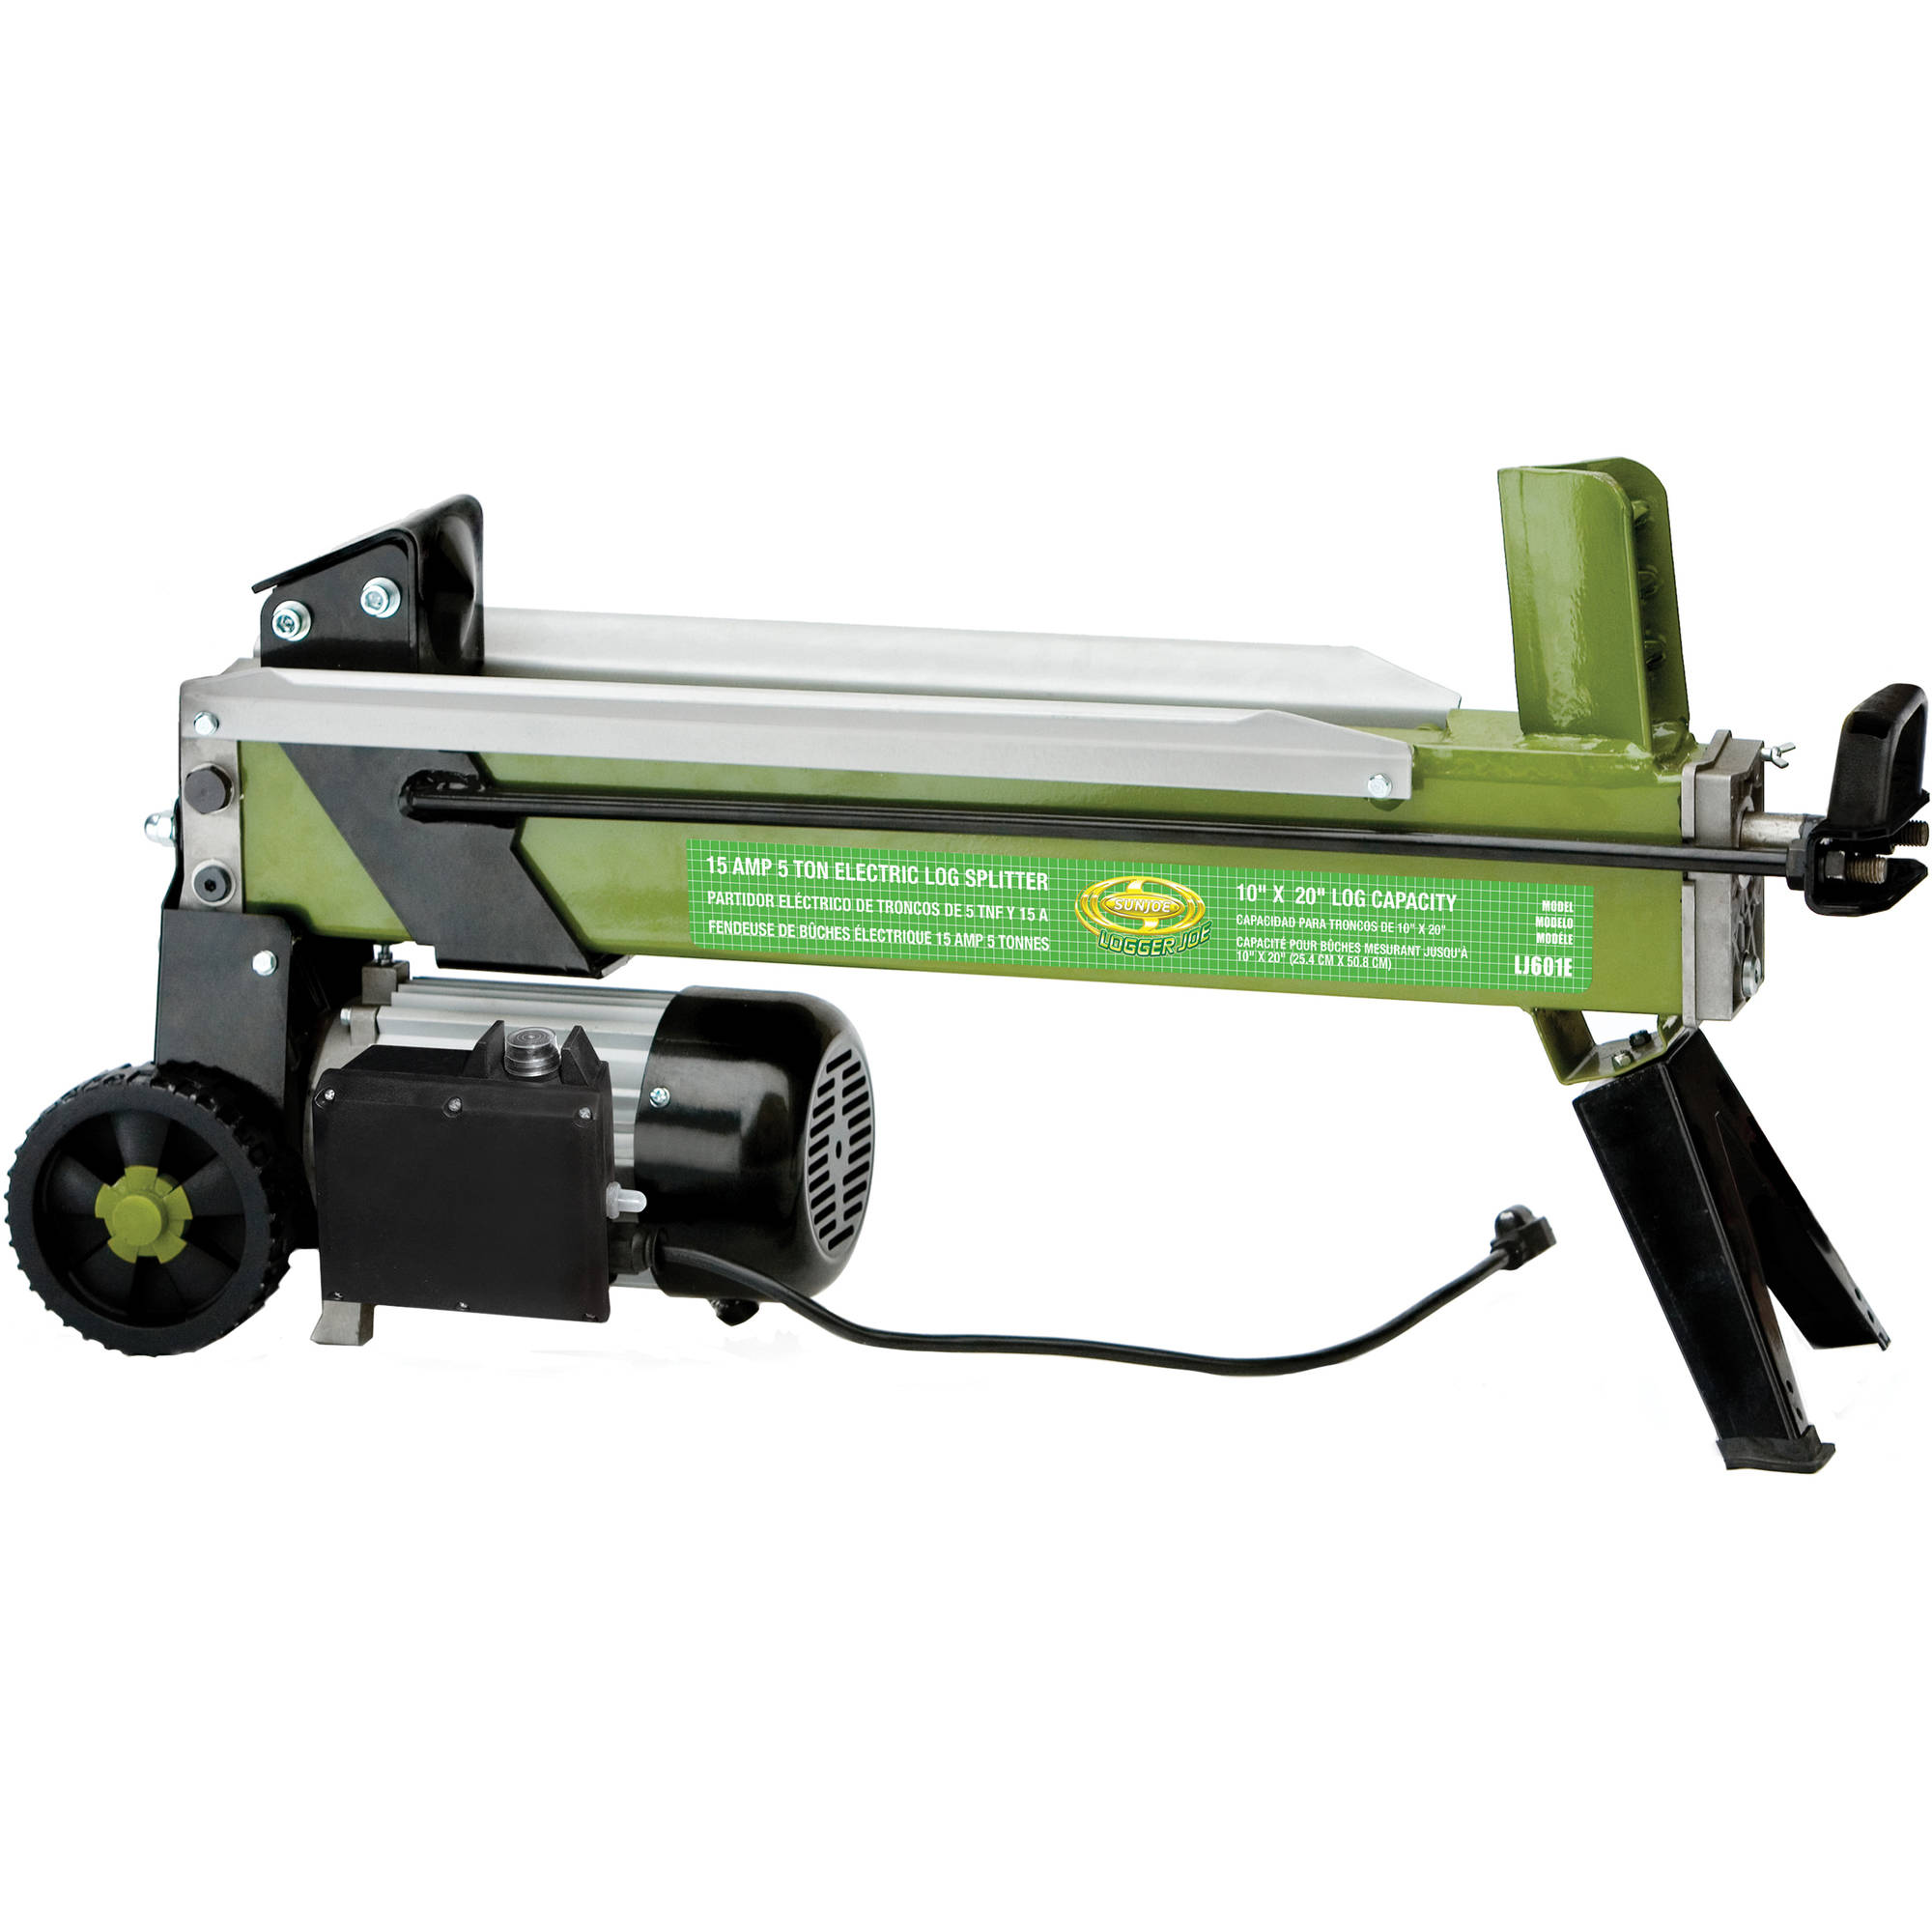 Sun Joe Logger Joe 5 Ton Electric Log Splitter